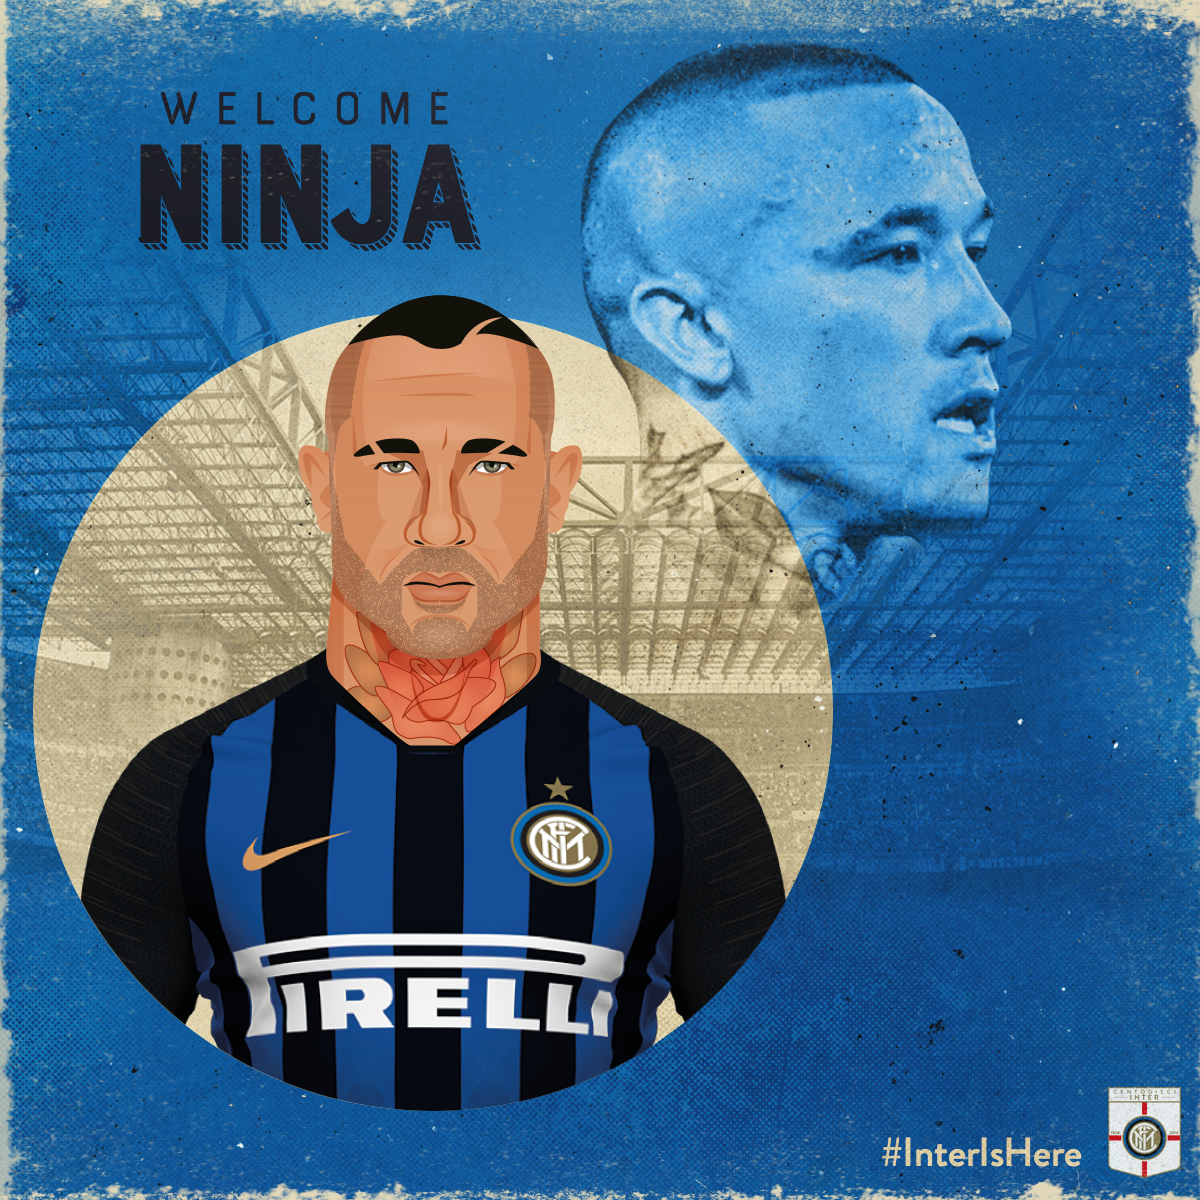 Radja Nainggolan   Signed from rivals Roma for £34.2 million, the all action midfielder was a massive coup for Inter, with fans delighted at his arrival. He will add quality to the Inter midfield as the club takes part in the 2018/19 Champions League and aims to progress in Serie A.